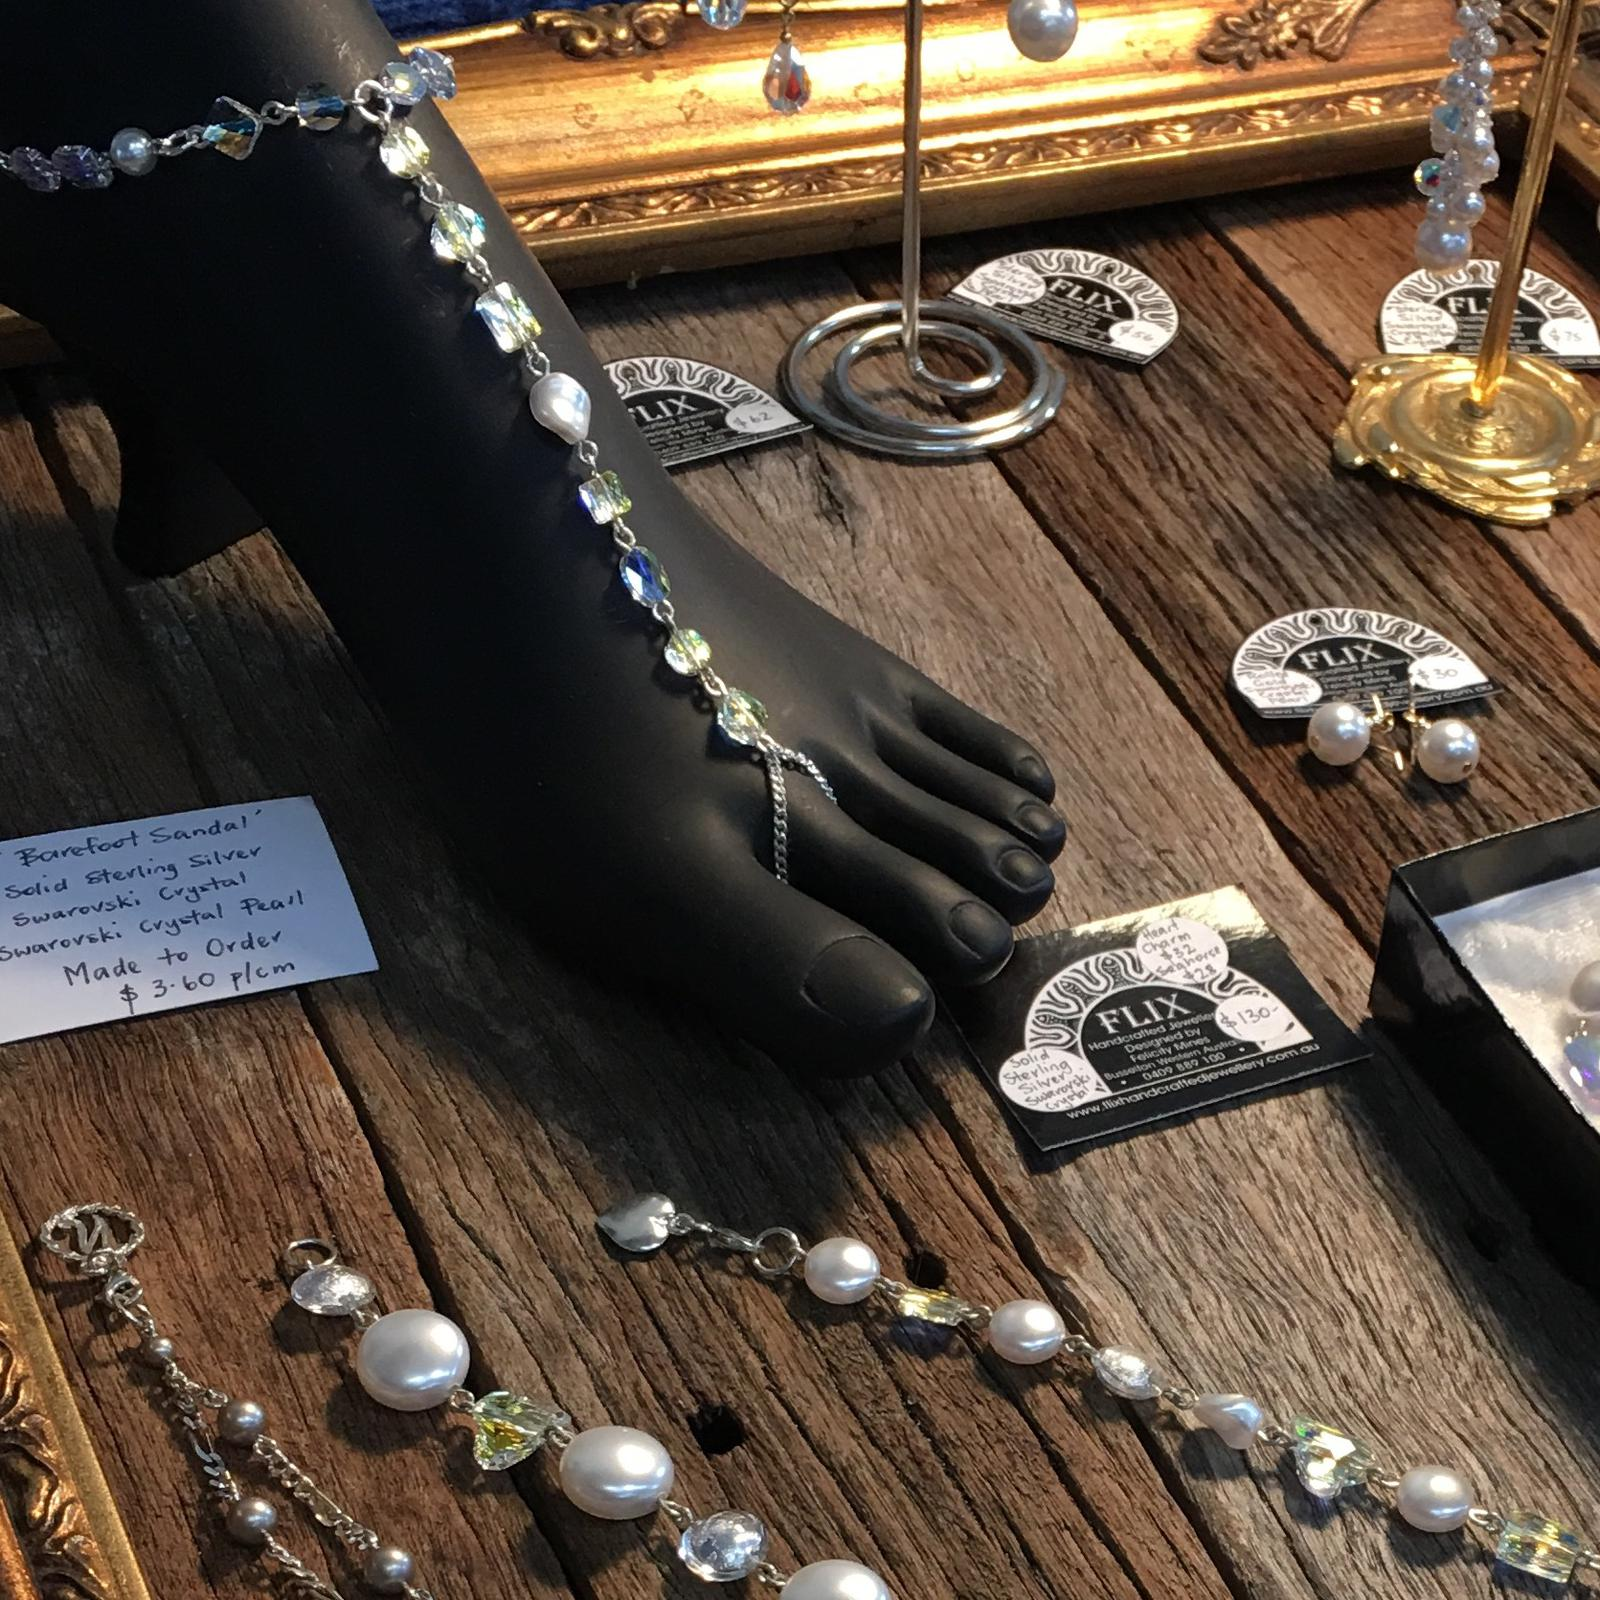 Flix Handcrafted Jewellery display